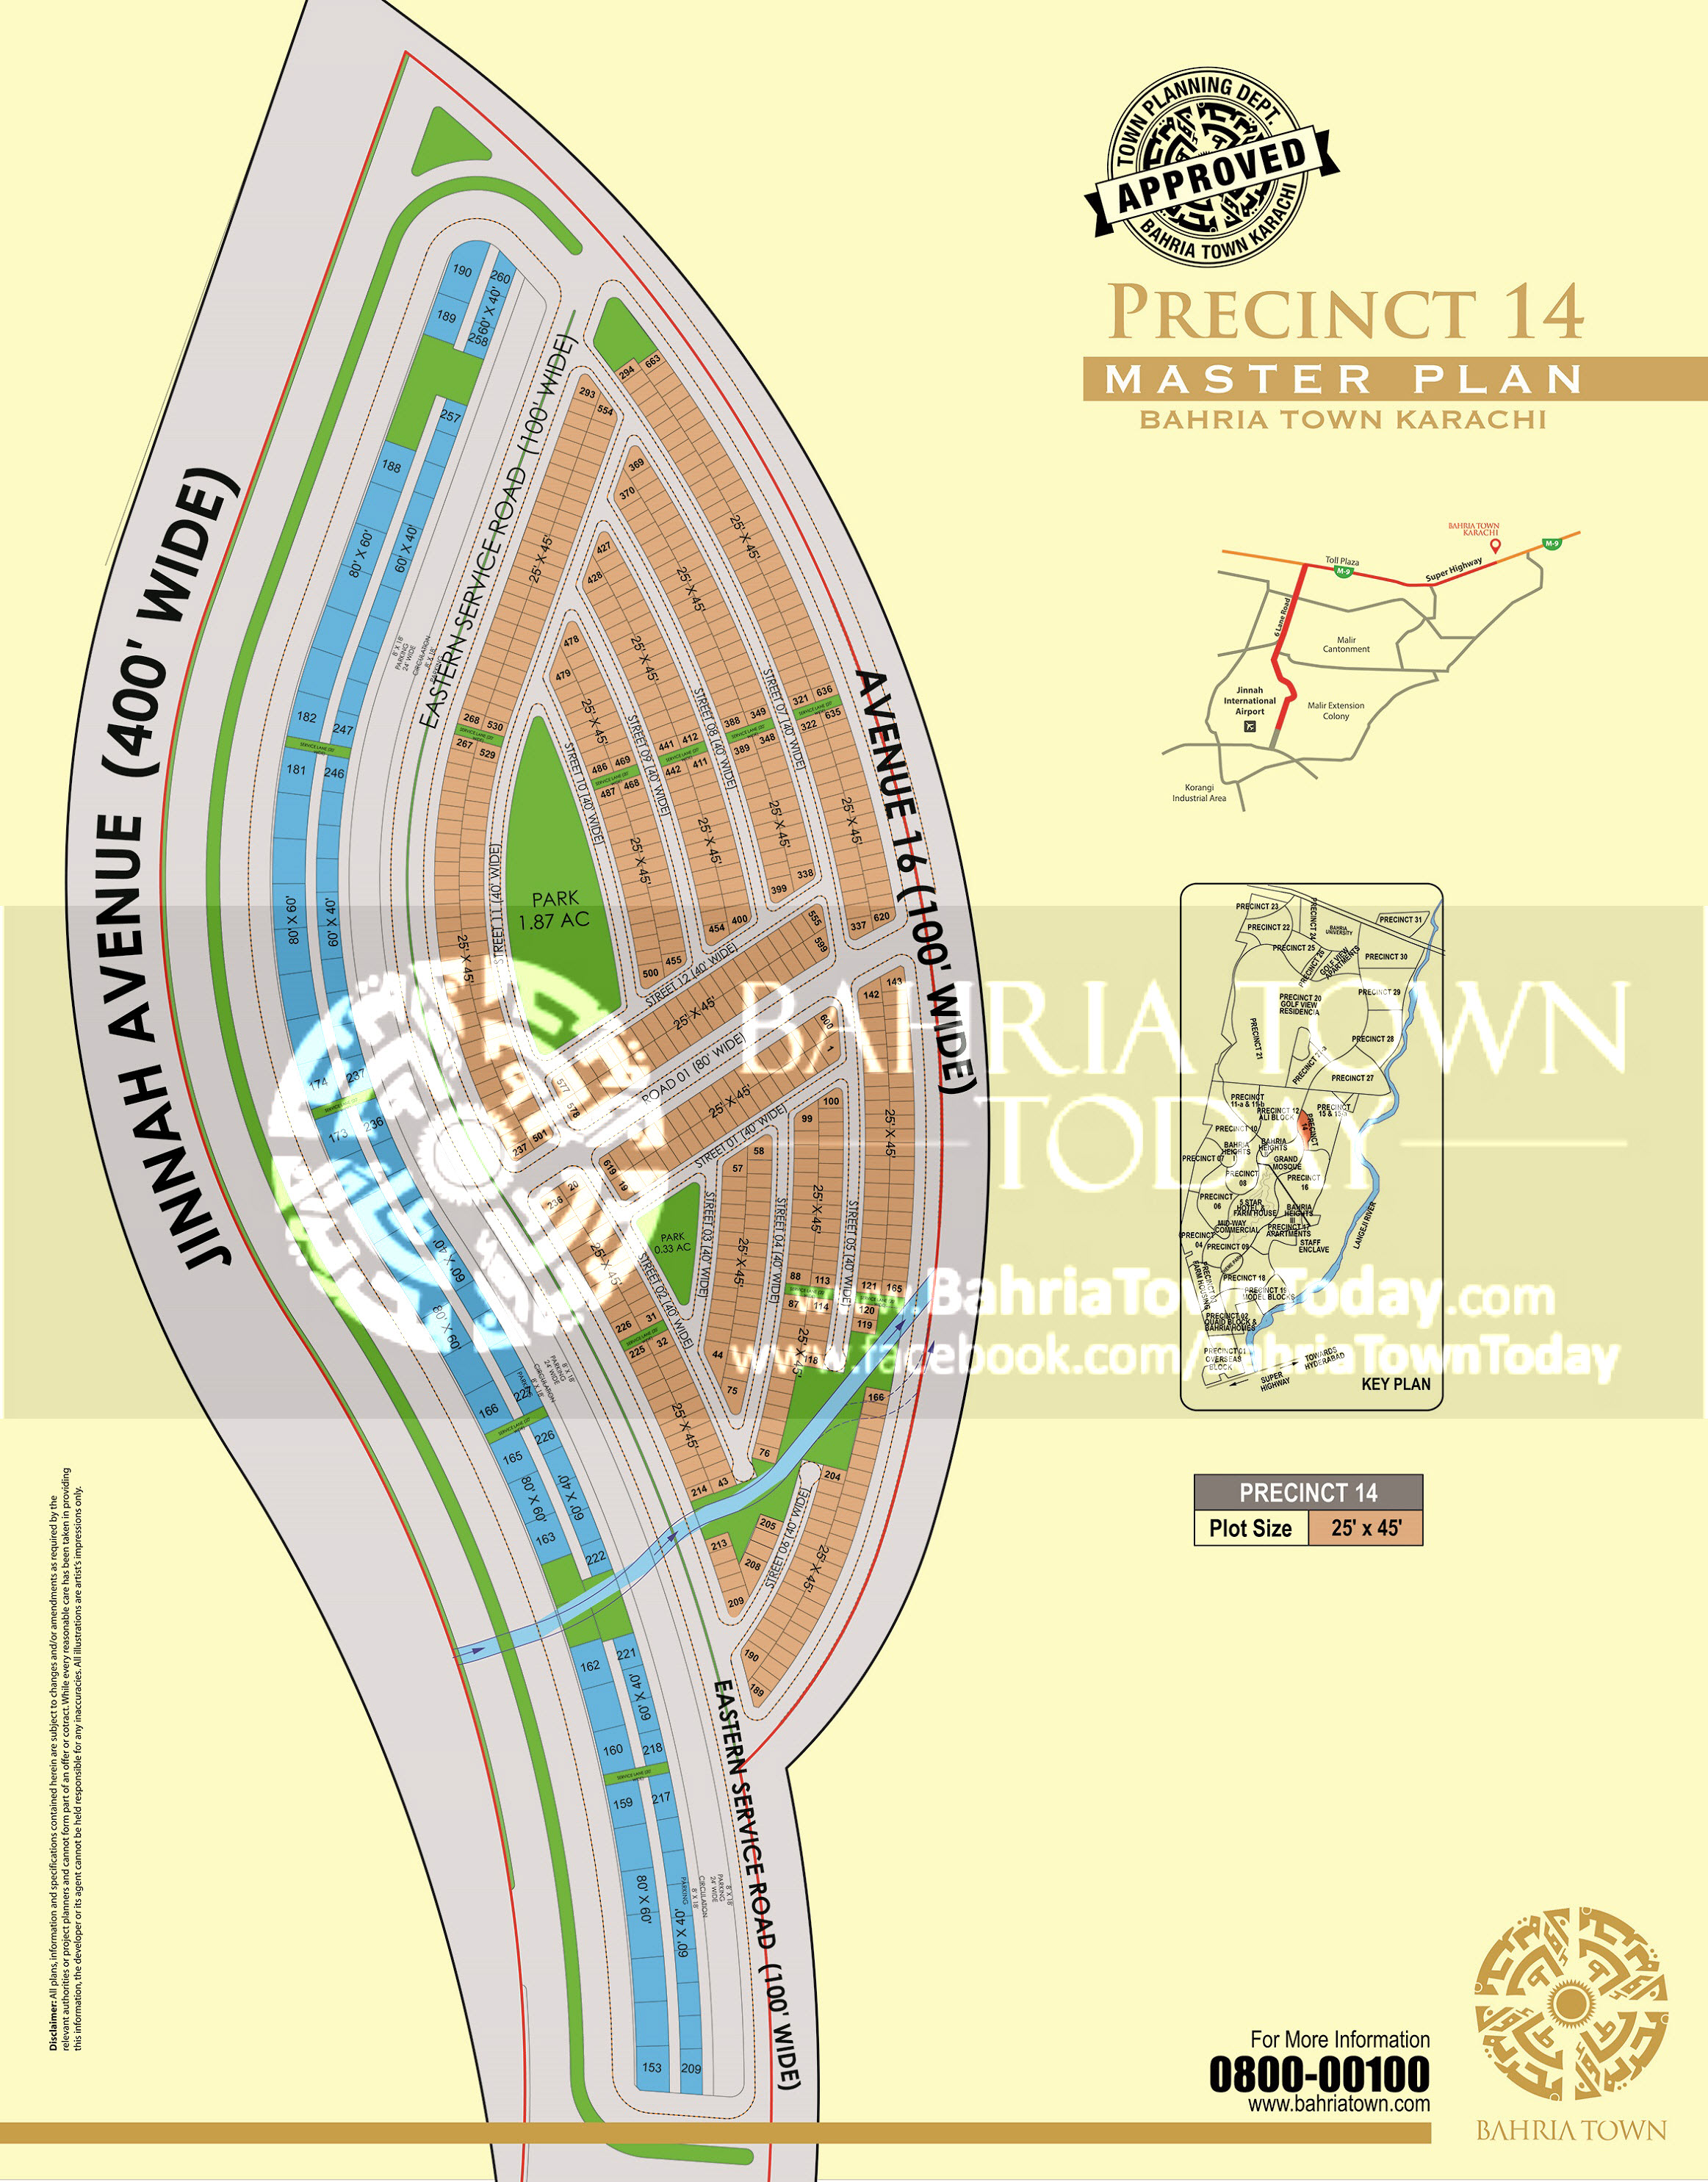 Bahria Town Karachi – Precinct 14 High Resolution Map